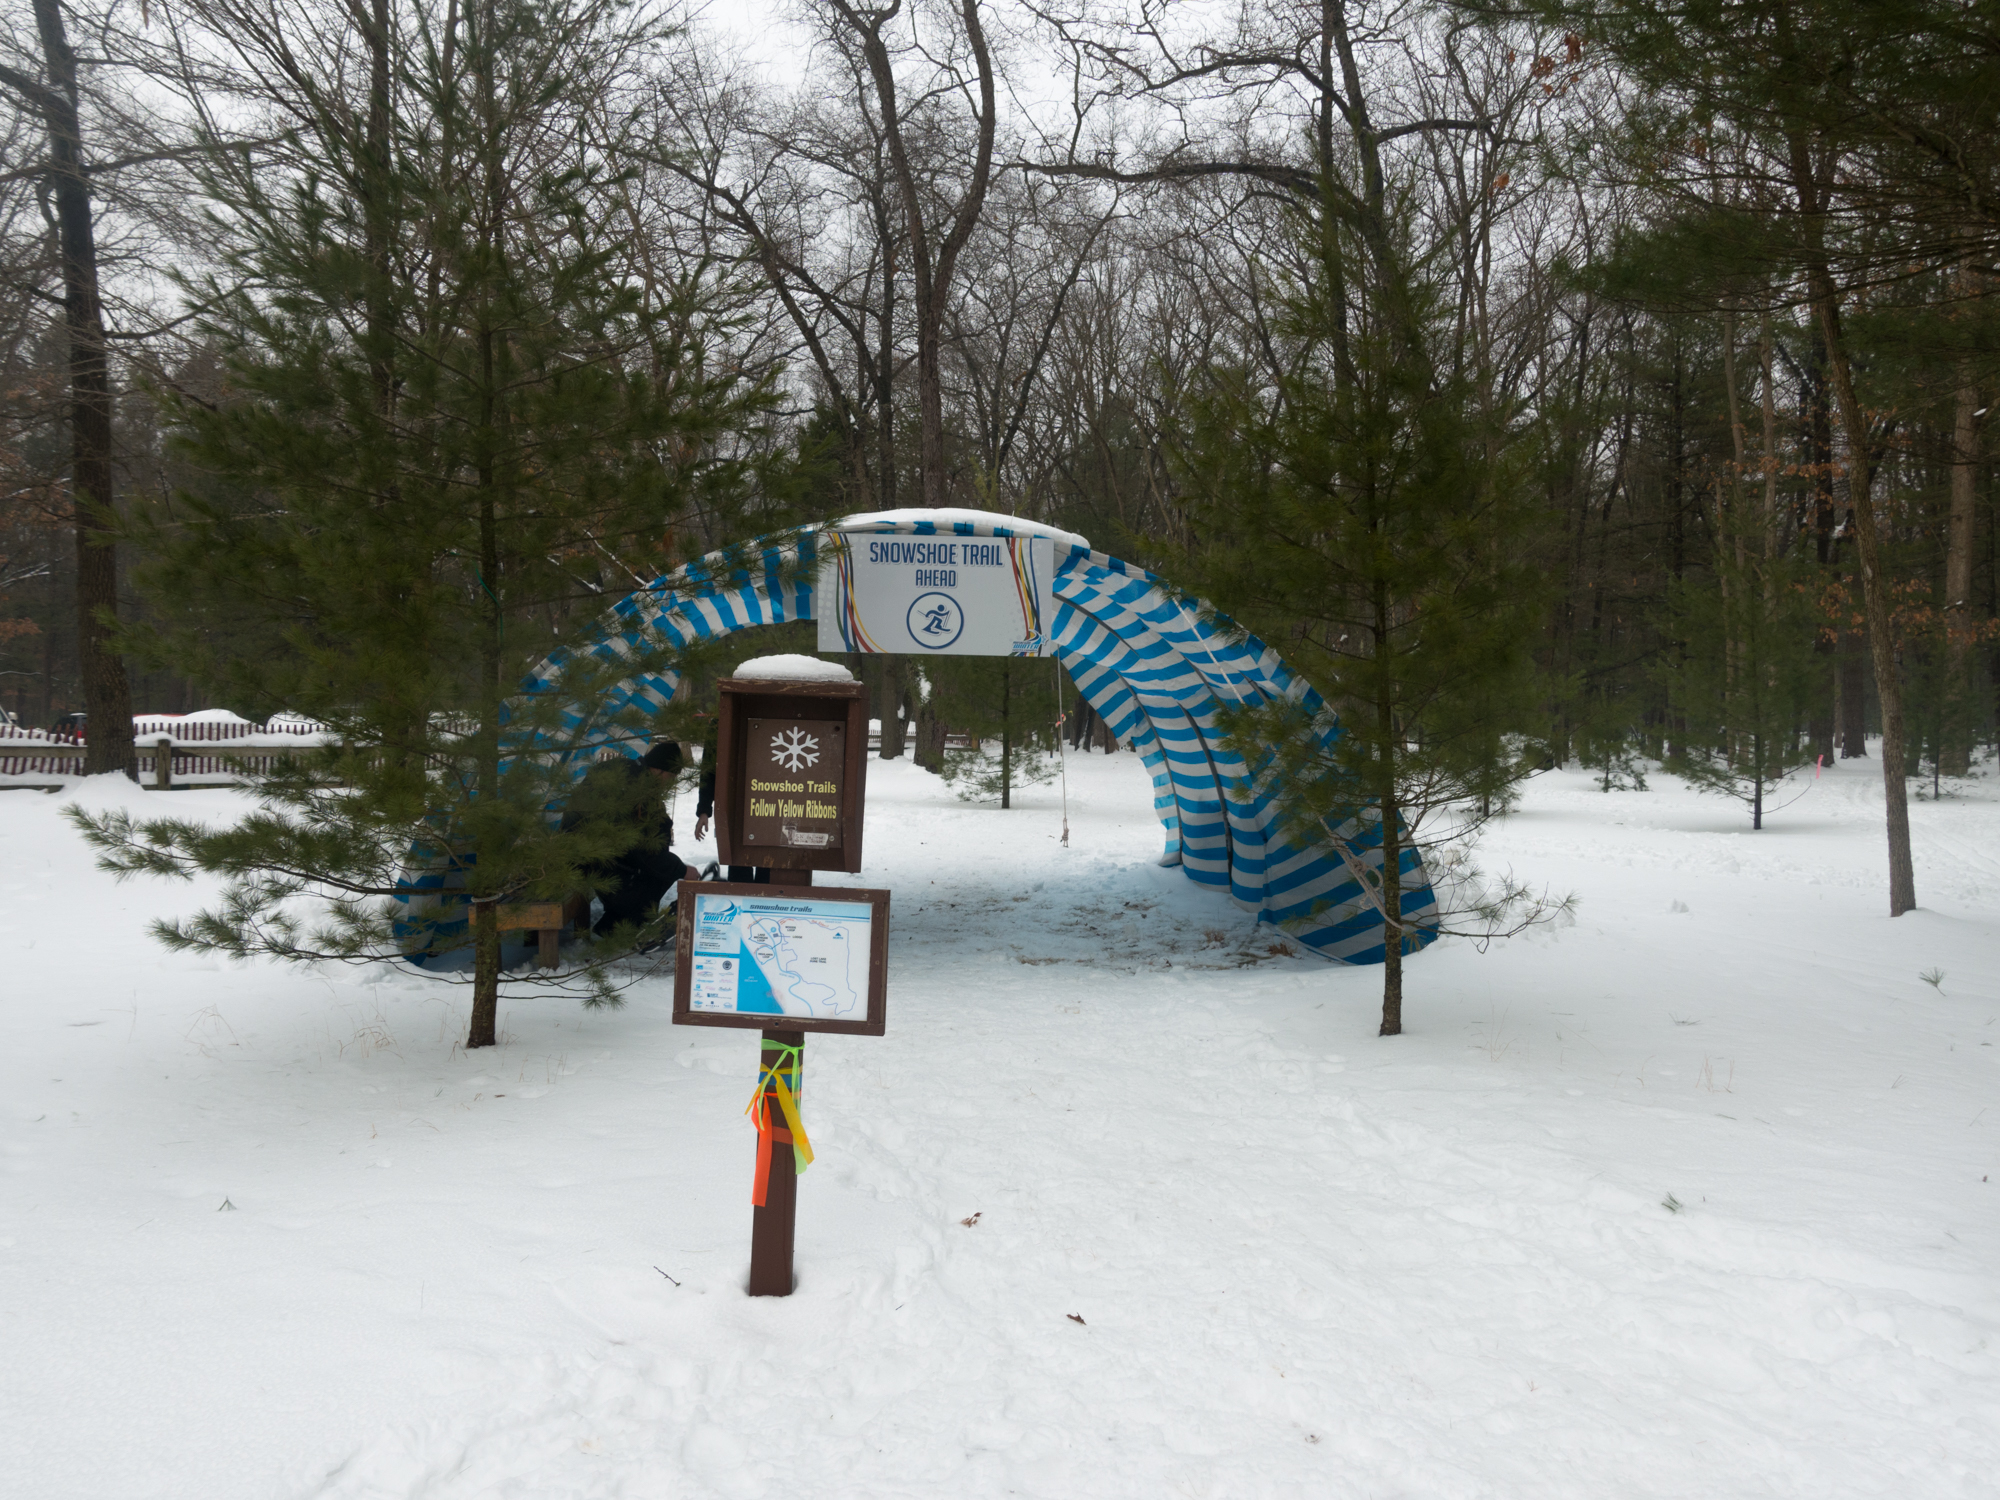 The snowshoe trails at the Muskegon Winter Sports Complex offers the most beautiful scenery in the region. For a quick hike, head over to theWoods Loopfor a quick loop around Muskegon State Park or theLake Michigan LoopandLost Lake Trailsfor spectacular views of the lake shore. The three trail systems serves all skill levels – beginner through expert.